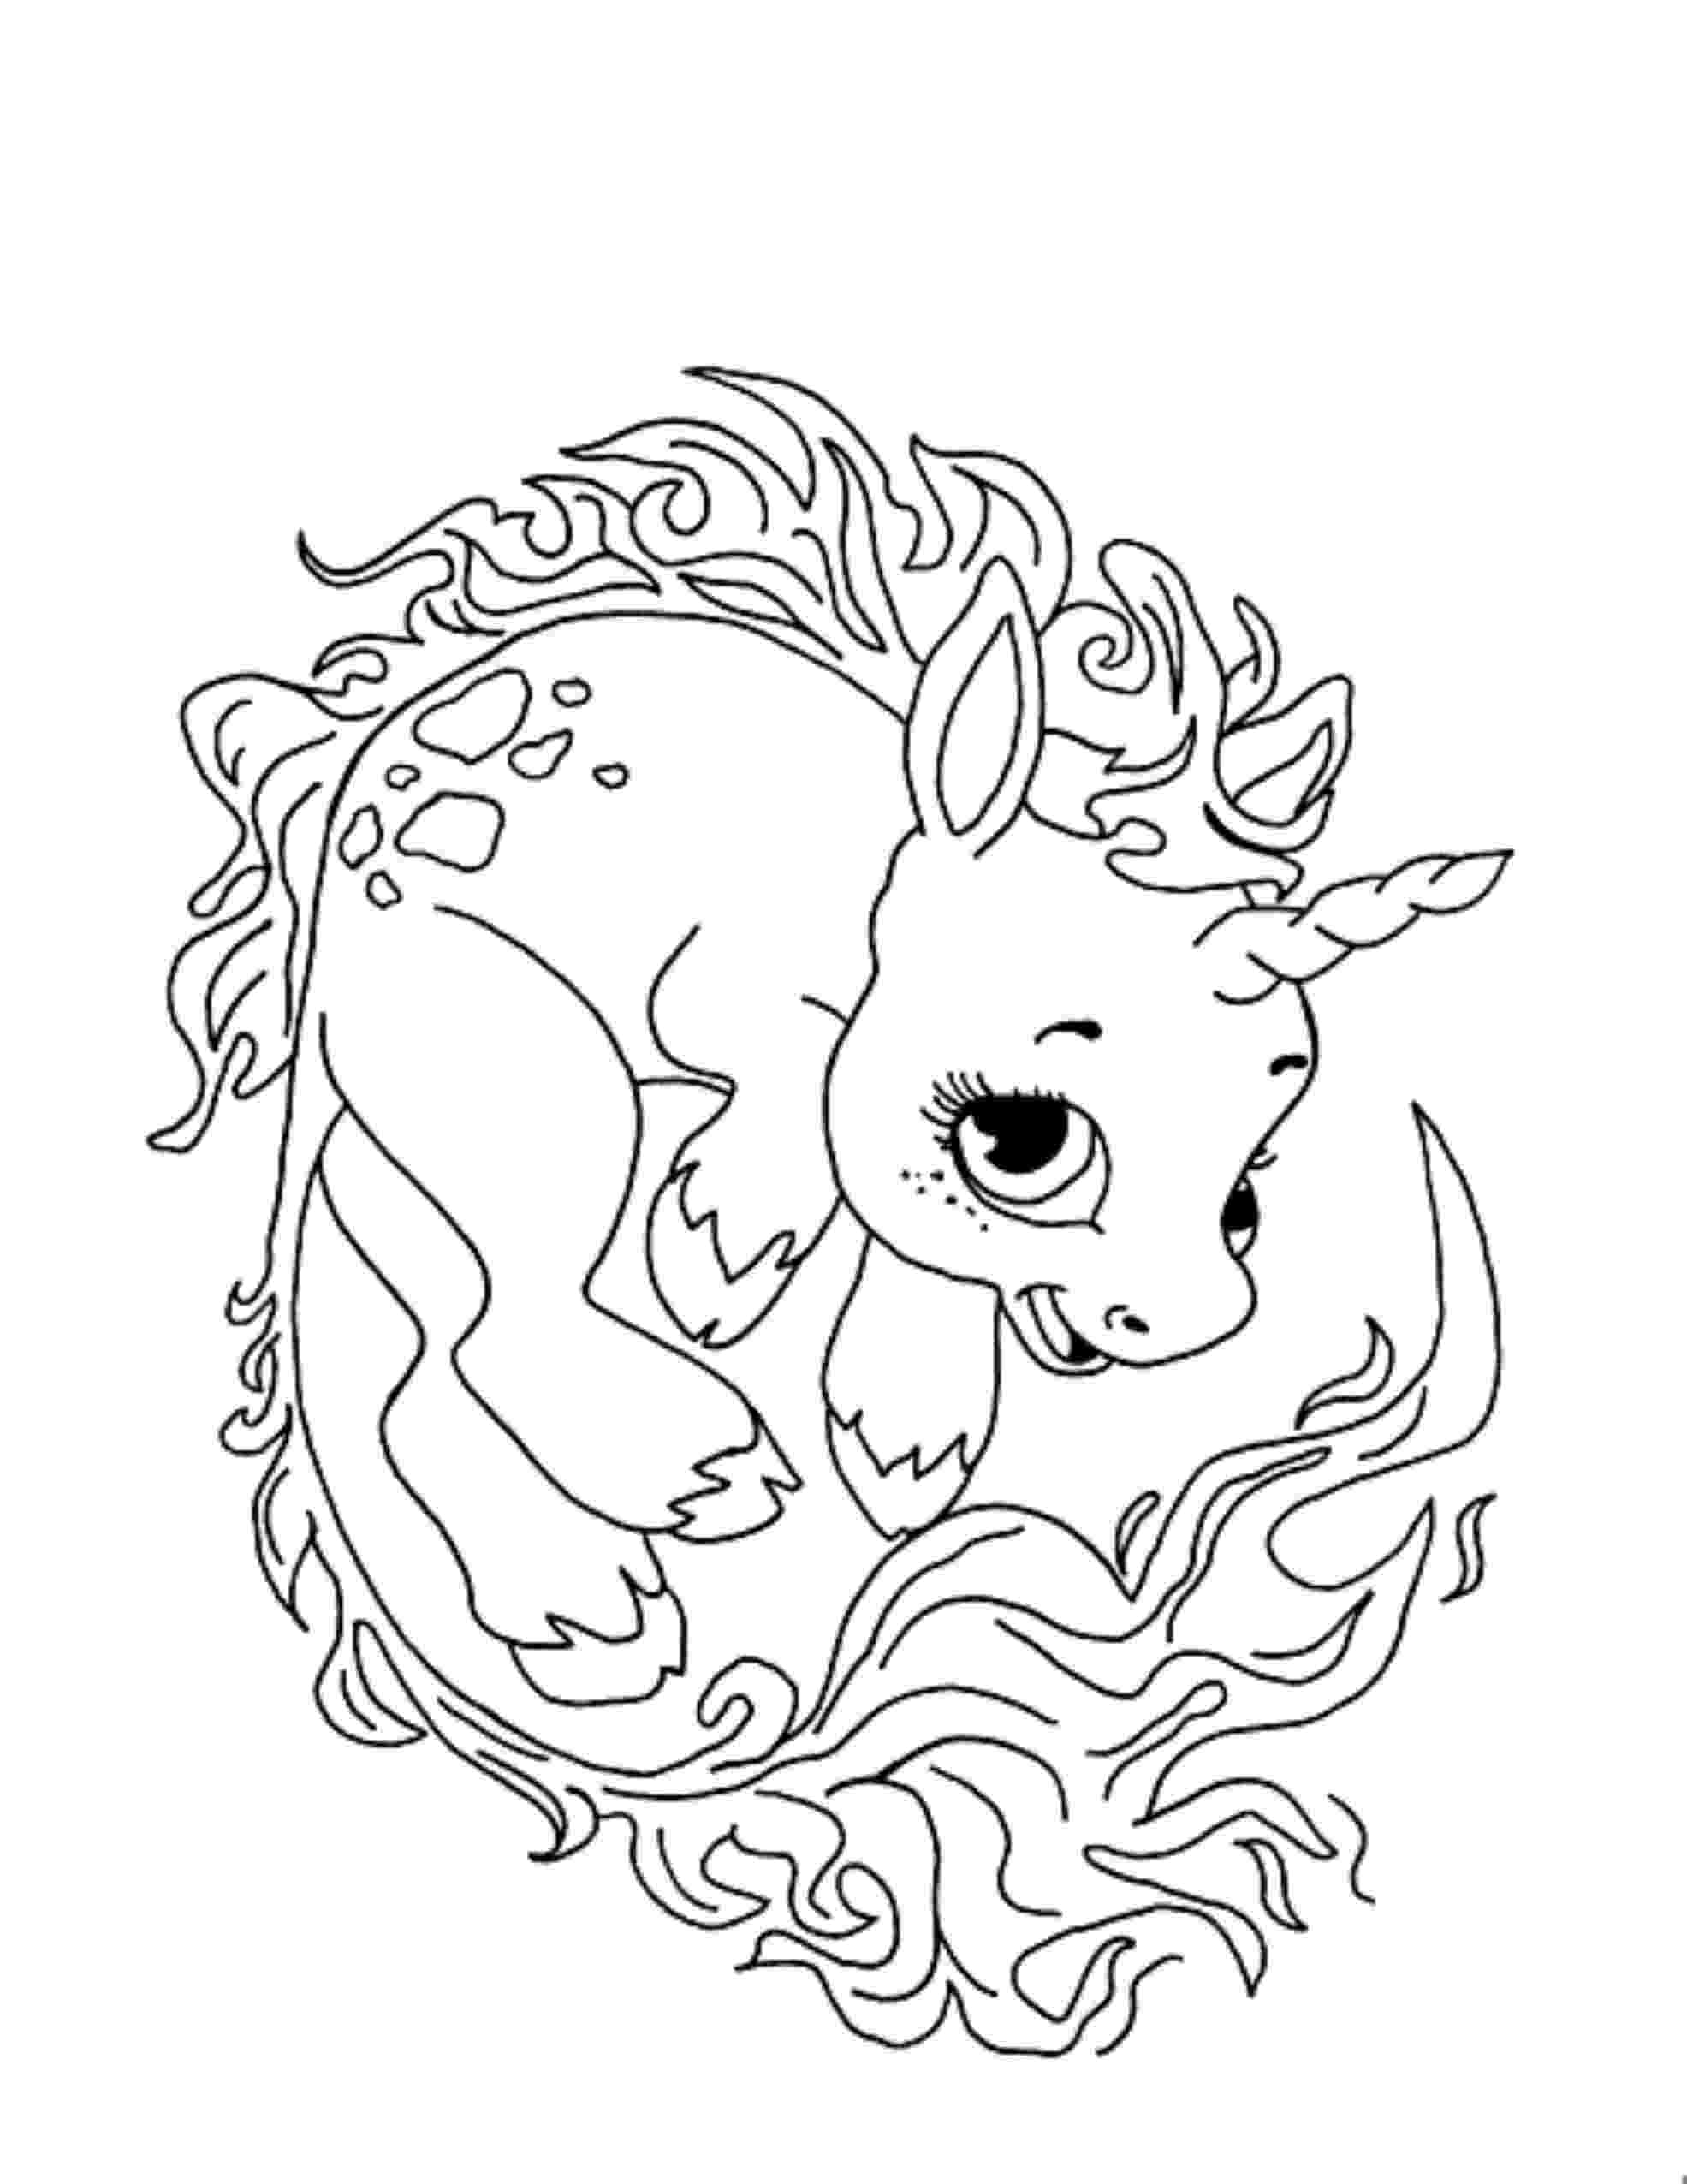 unicorn colouring unicorn color pages for kids loving printable unicorn colouring